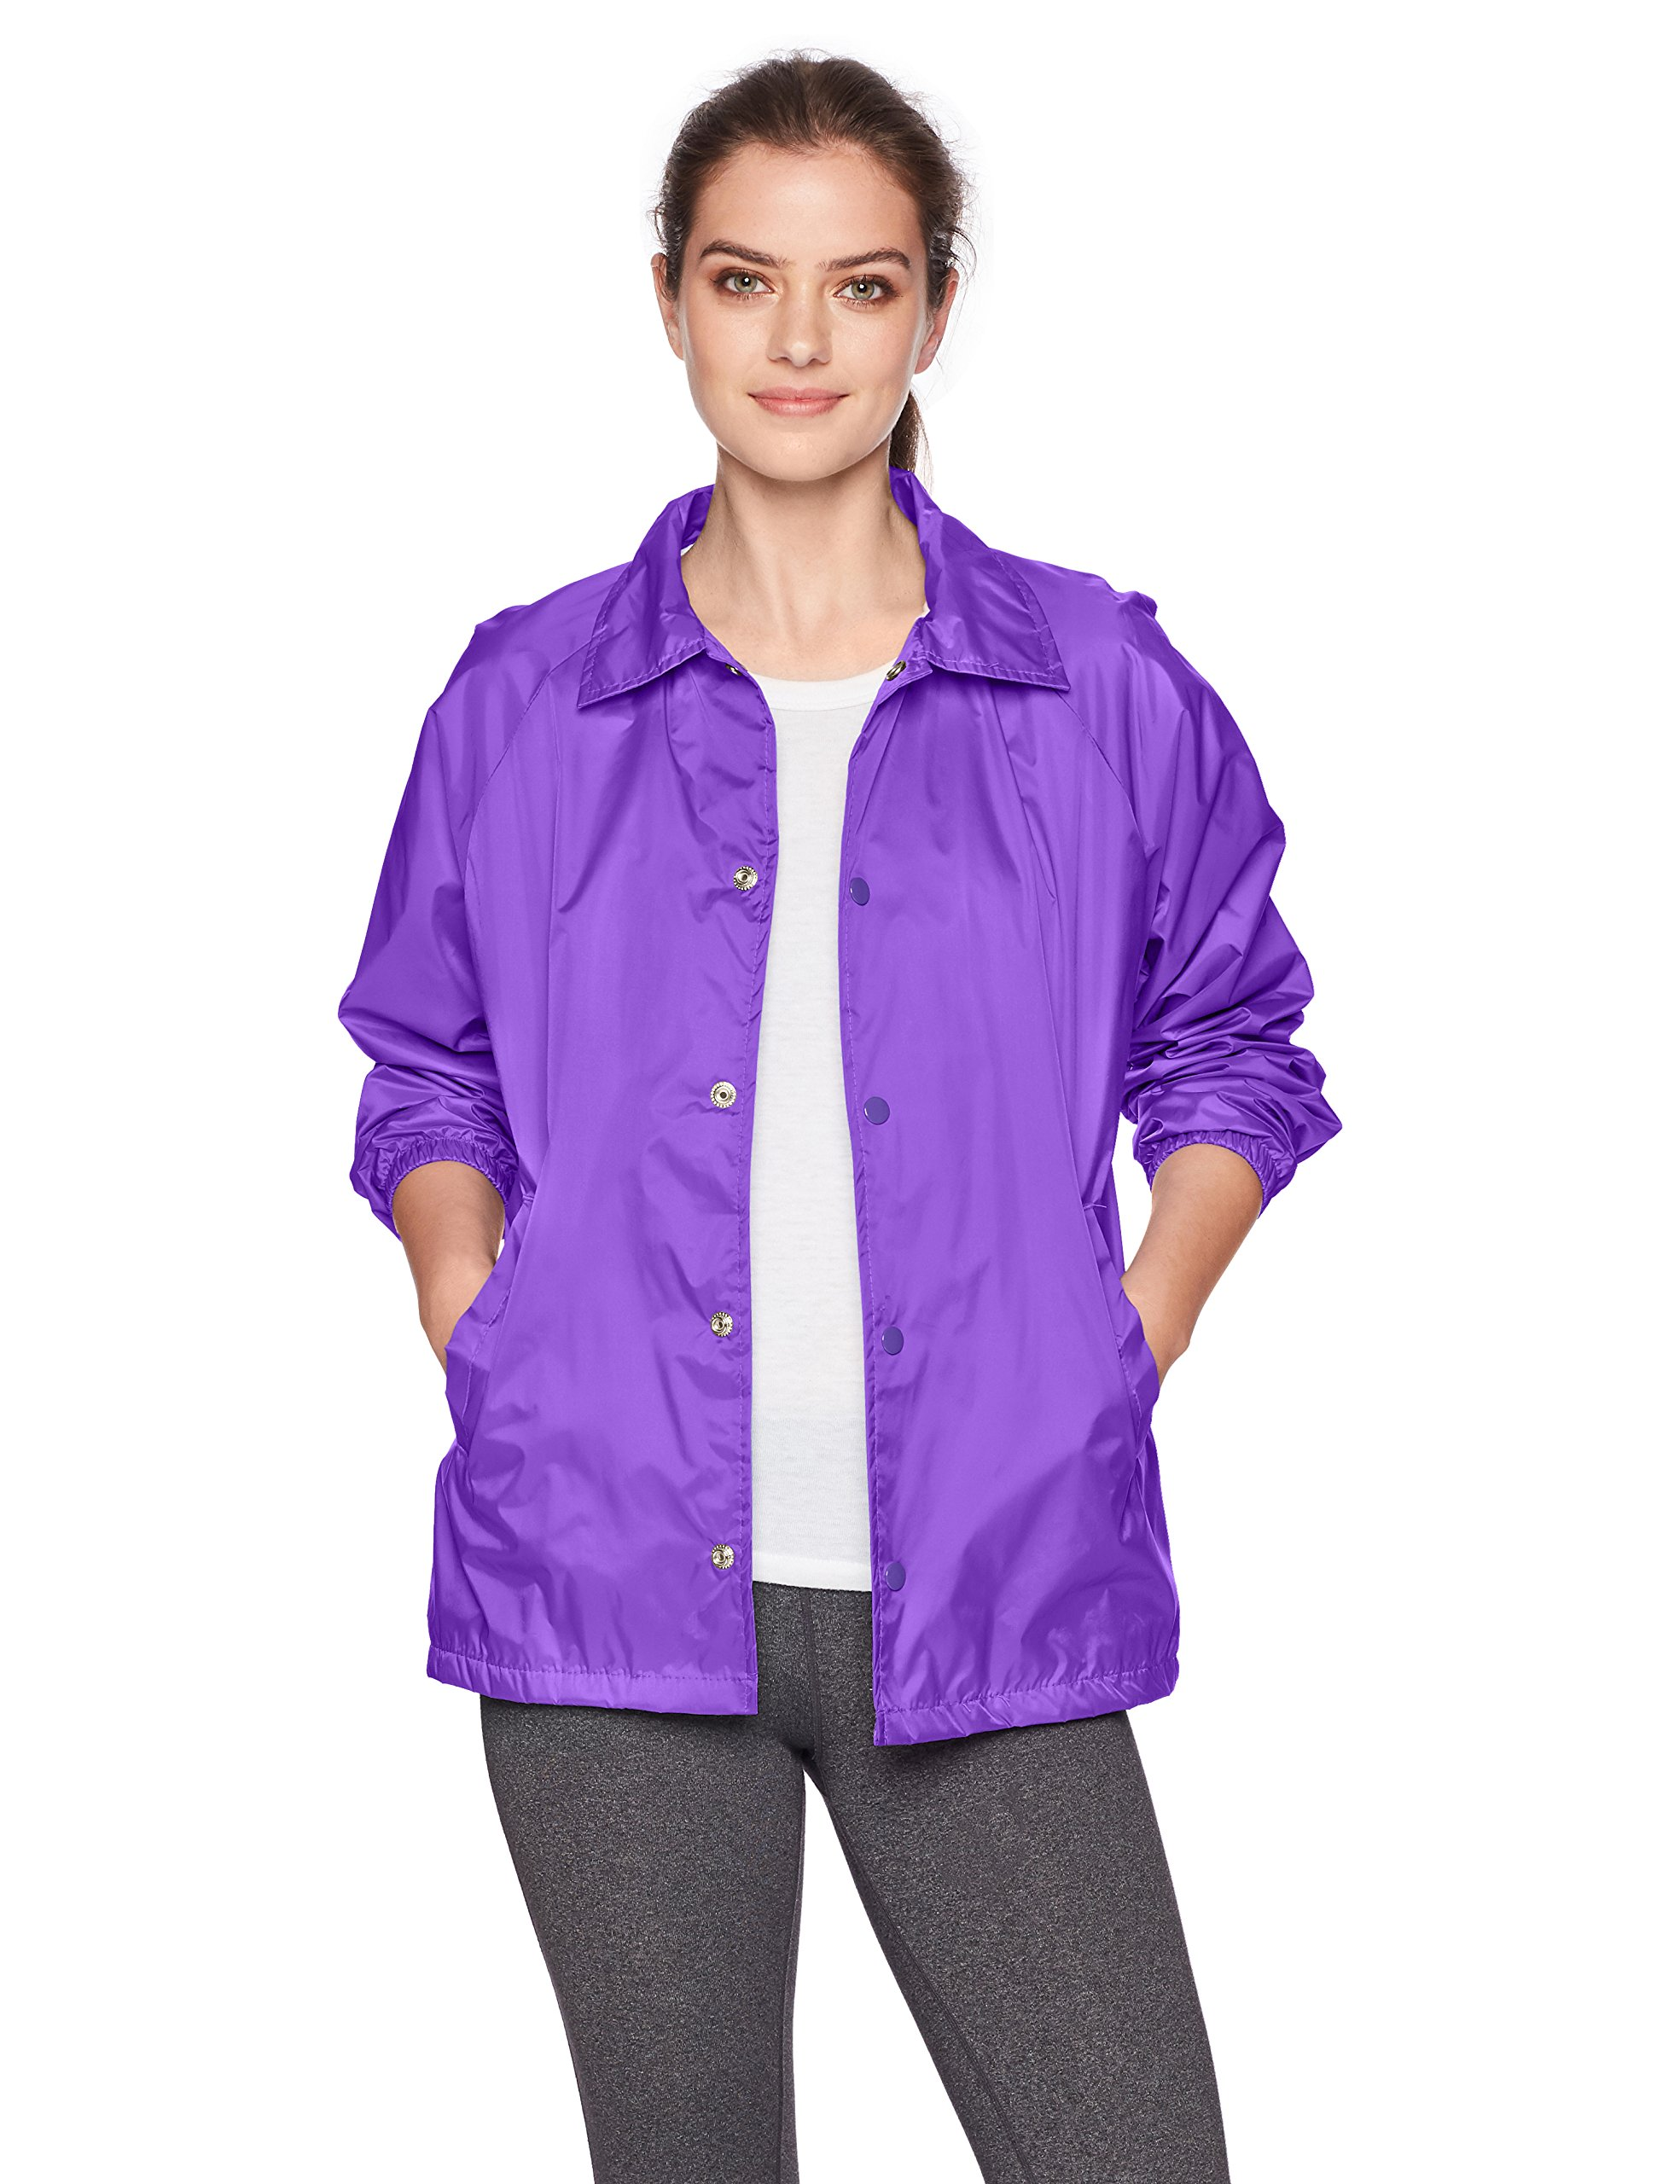 Augusta Sportswear Unisex-Adult Nylon Coach's Jacket/Lined, Purple, X-Large by Augusta Sportswear